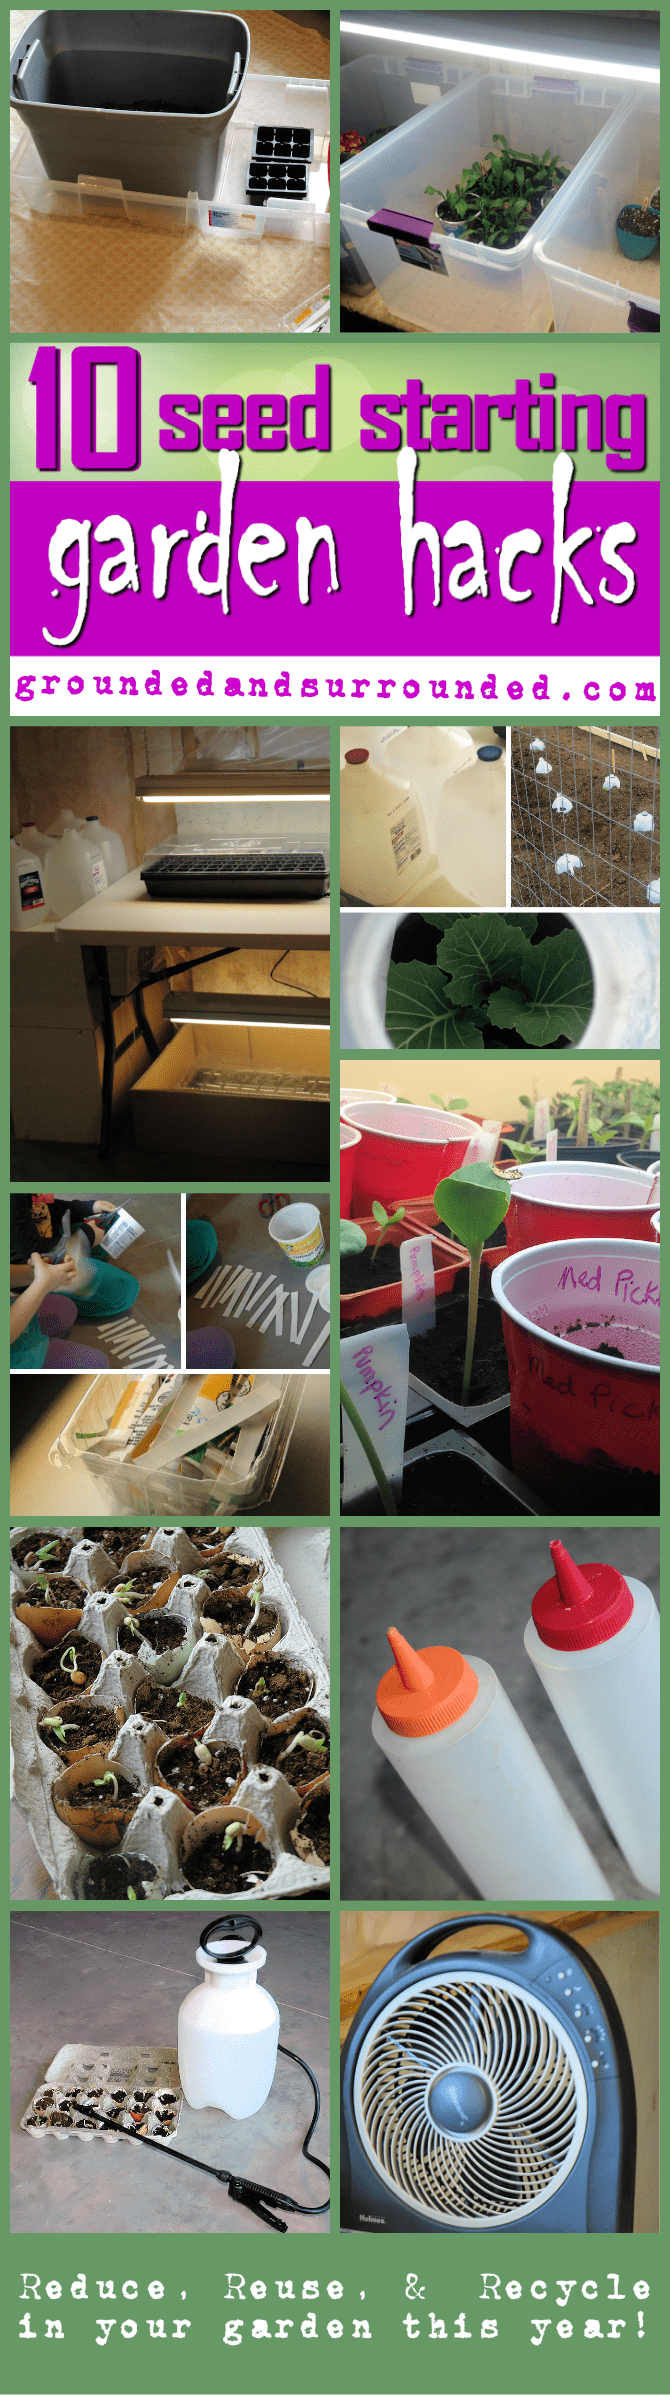 10 Seed Starting Garden Hacks you can do indoors during the months on the calendar that are freezing! These tips and ideas will help you DIY or with your kids. Kids love to get their hands dirty! All you need are some containers, mix, lights, and some recycled goods! Vegetables and flowers here we come...in a few months!